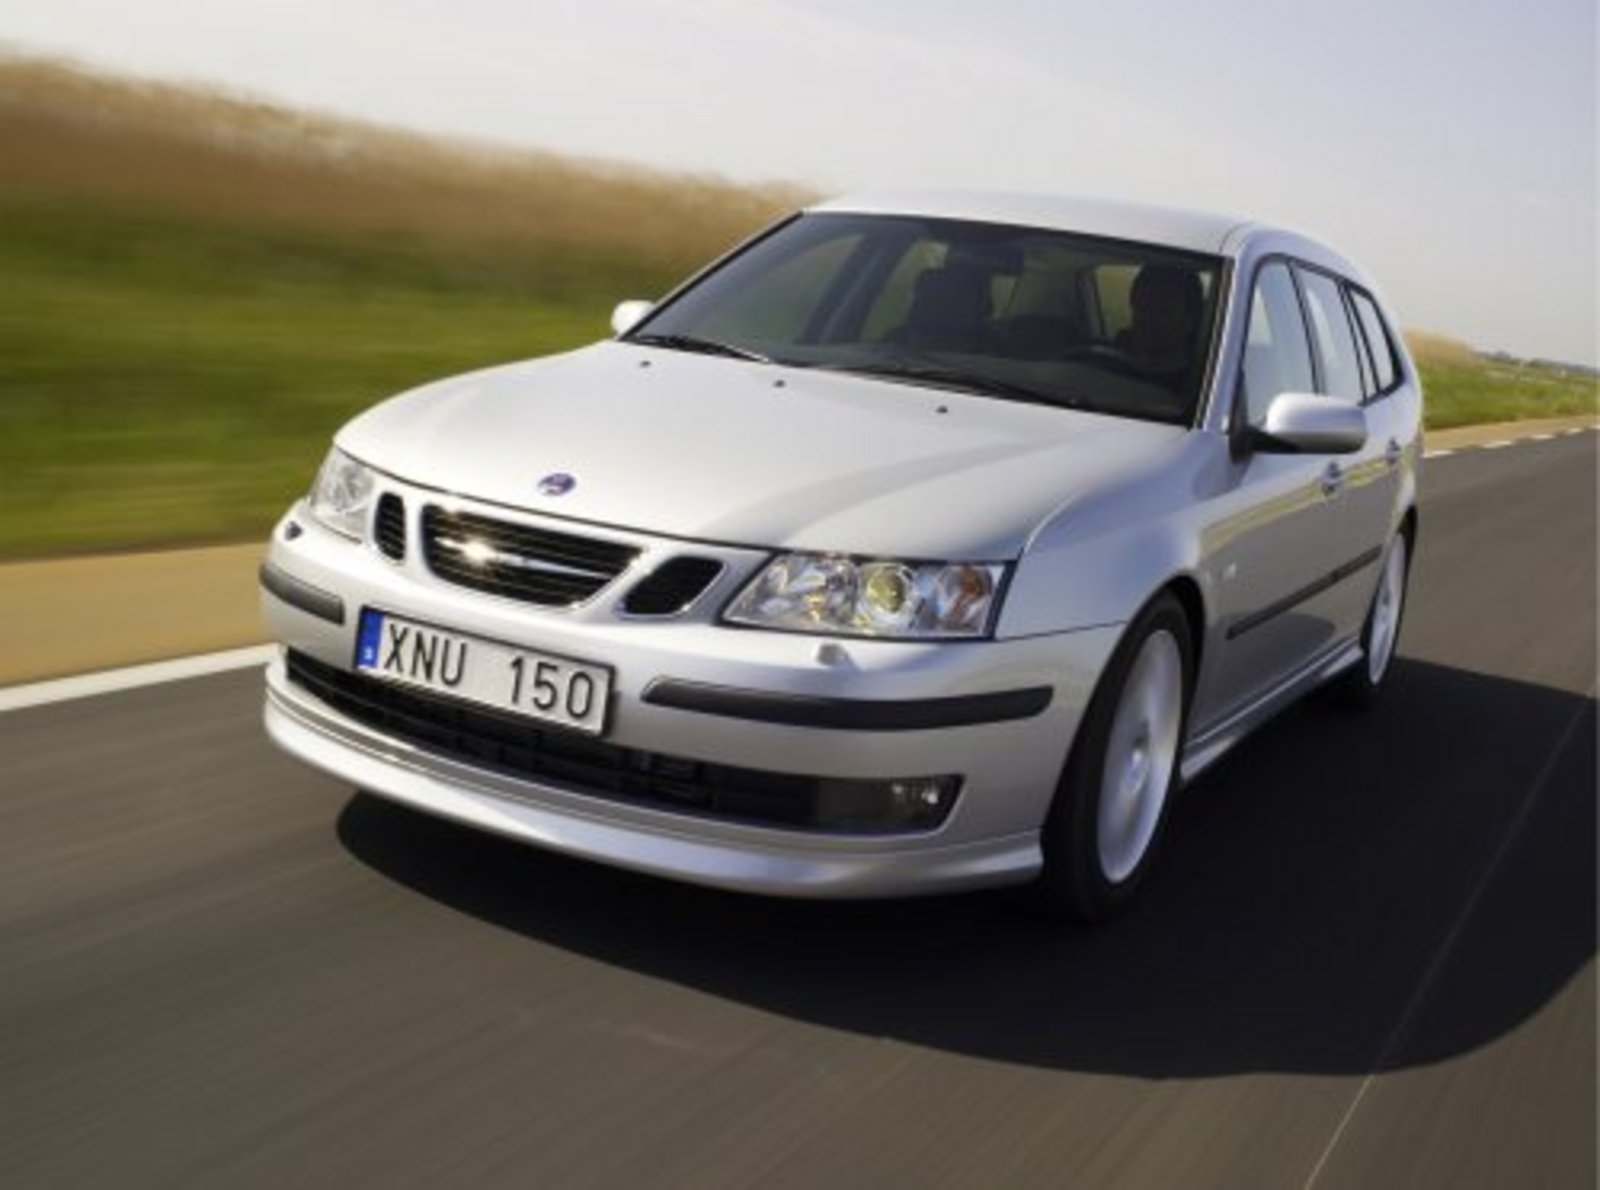 2007 Saab 9-3 Sportcombi Review - Gallery